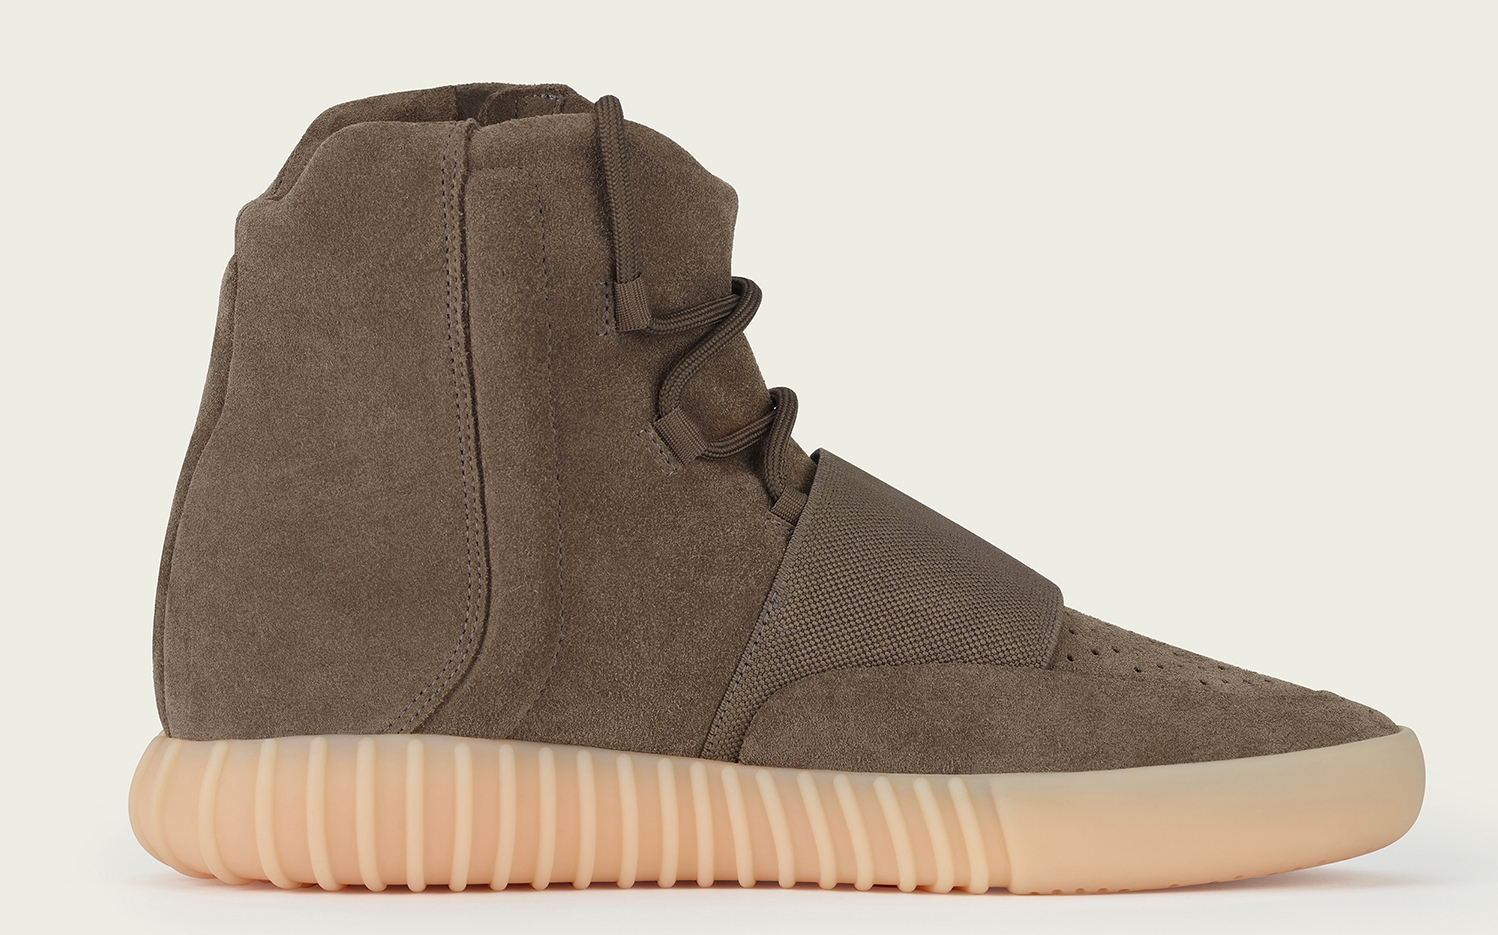 adidas-yeezy-boost-750-chocolate